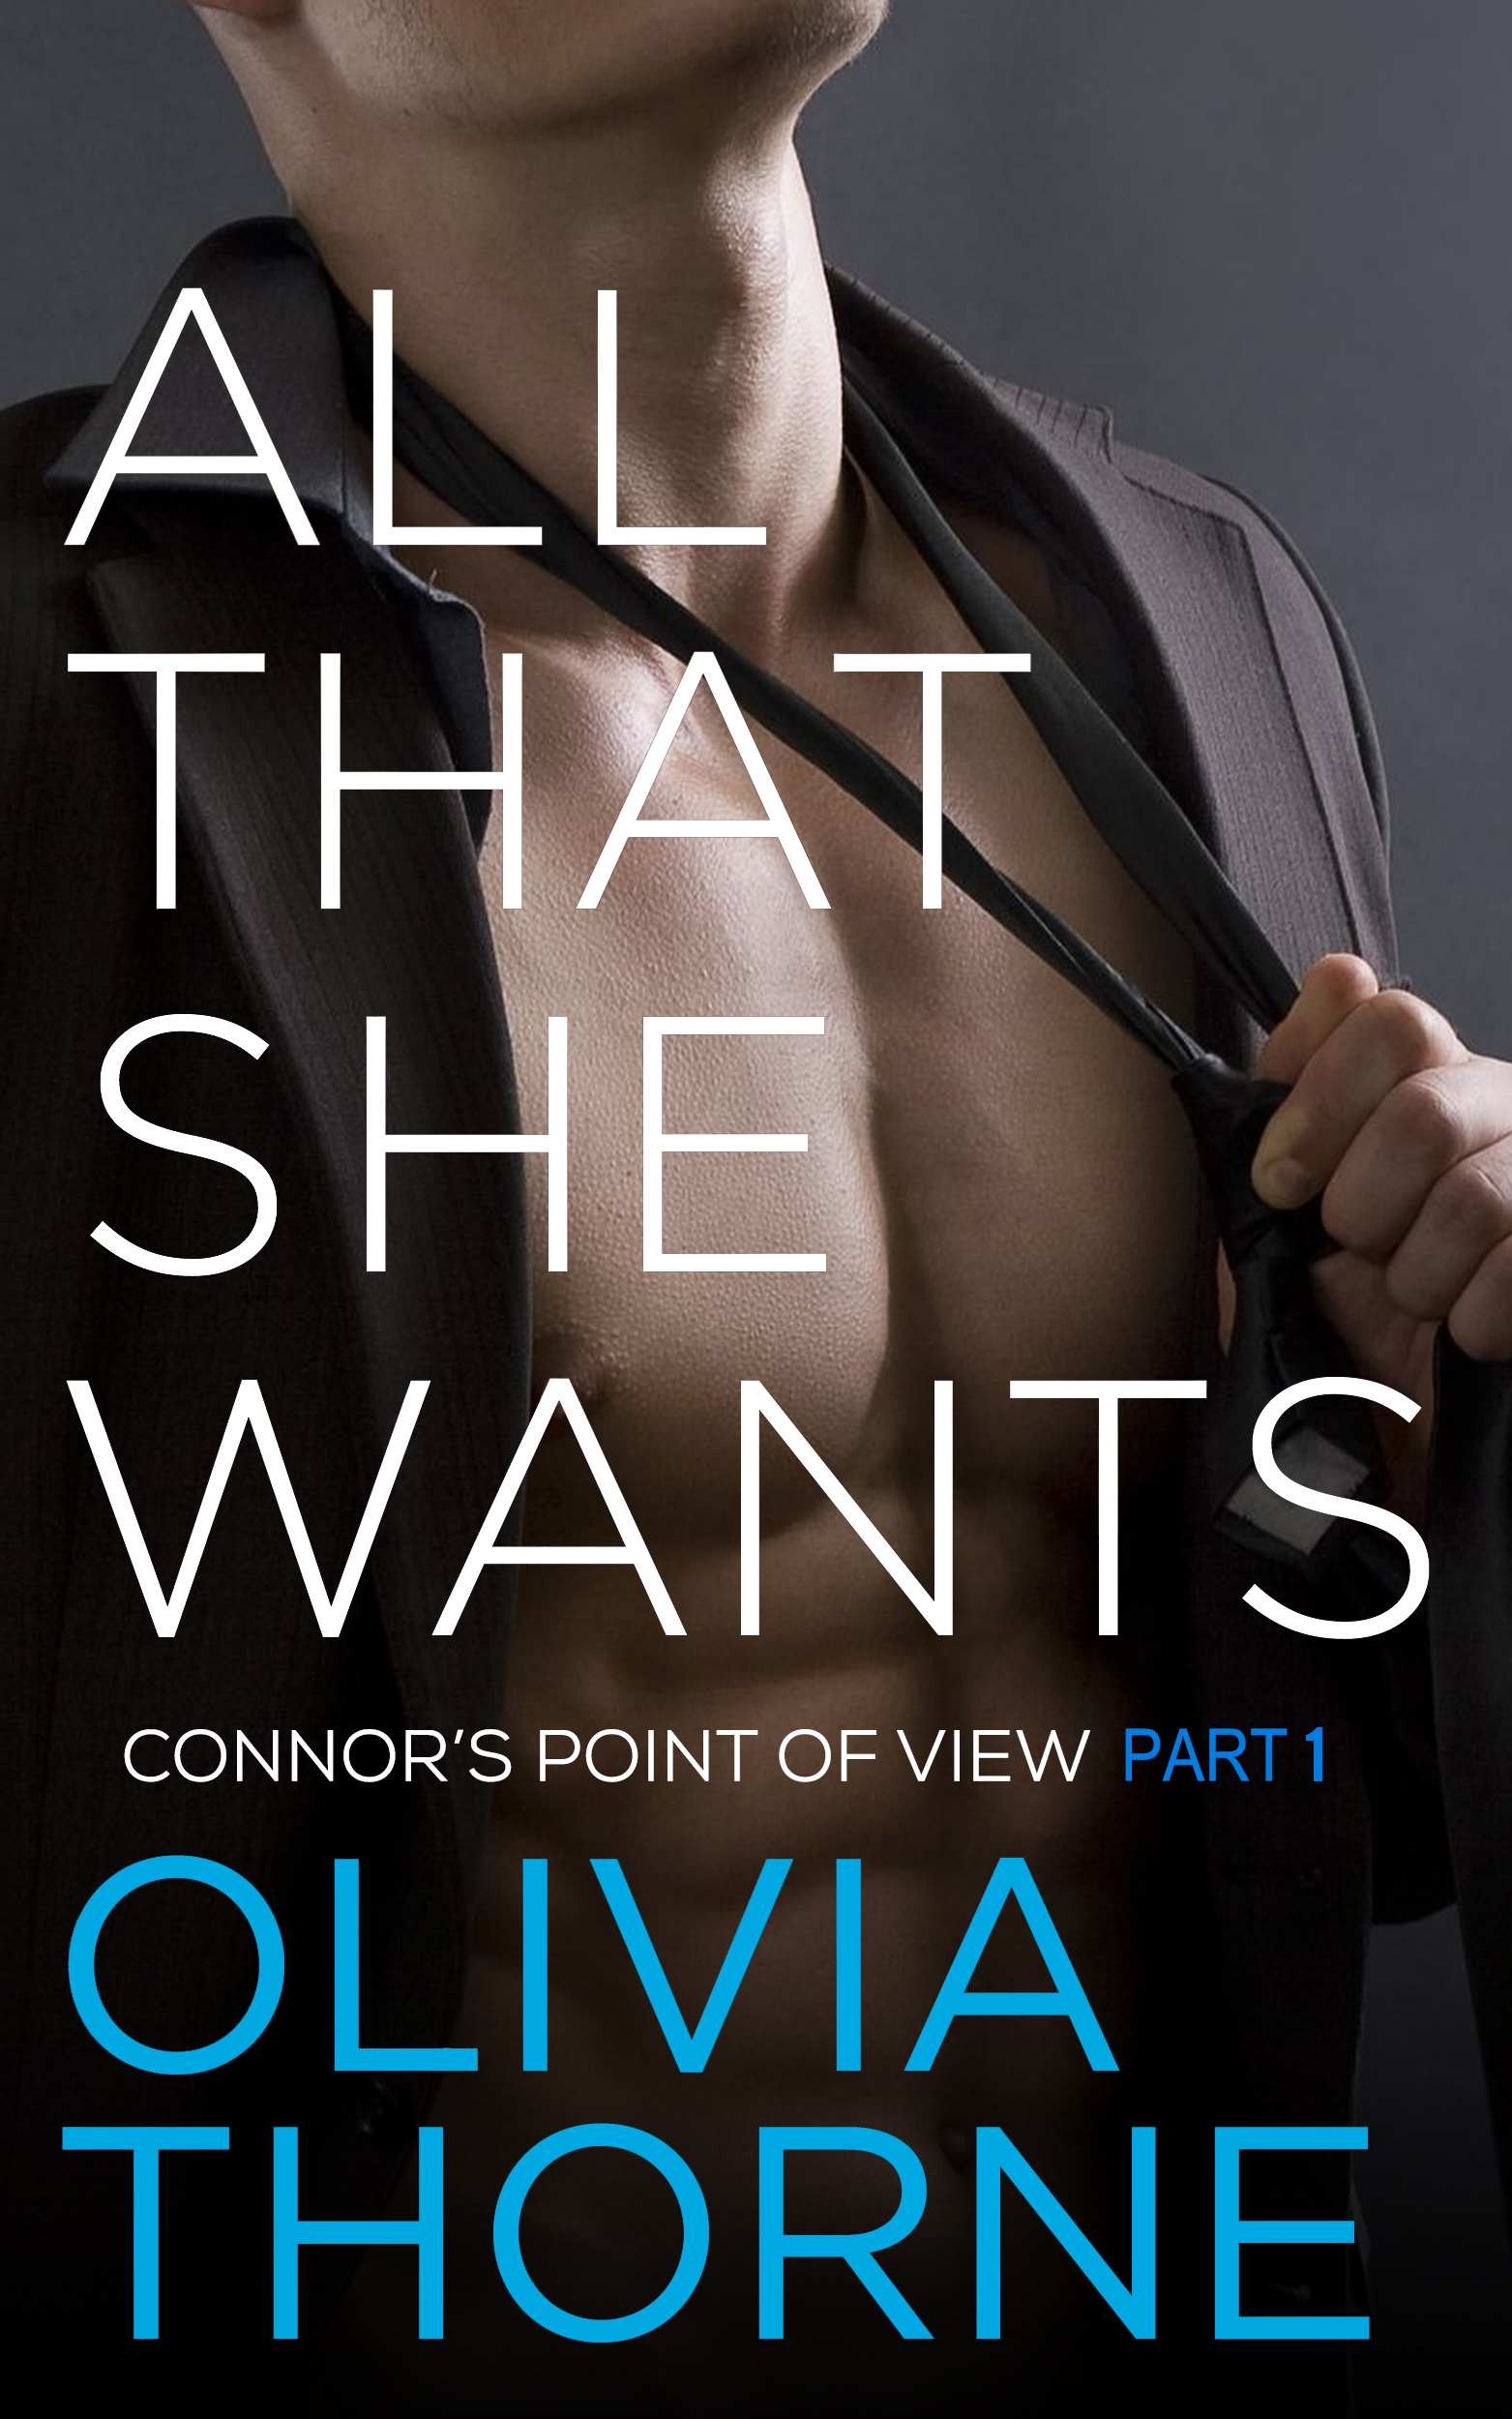 Olivia Thorne - All That She Wants (Connor's Point of View Part 1)